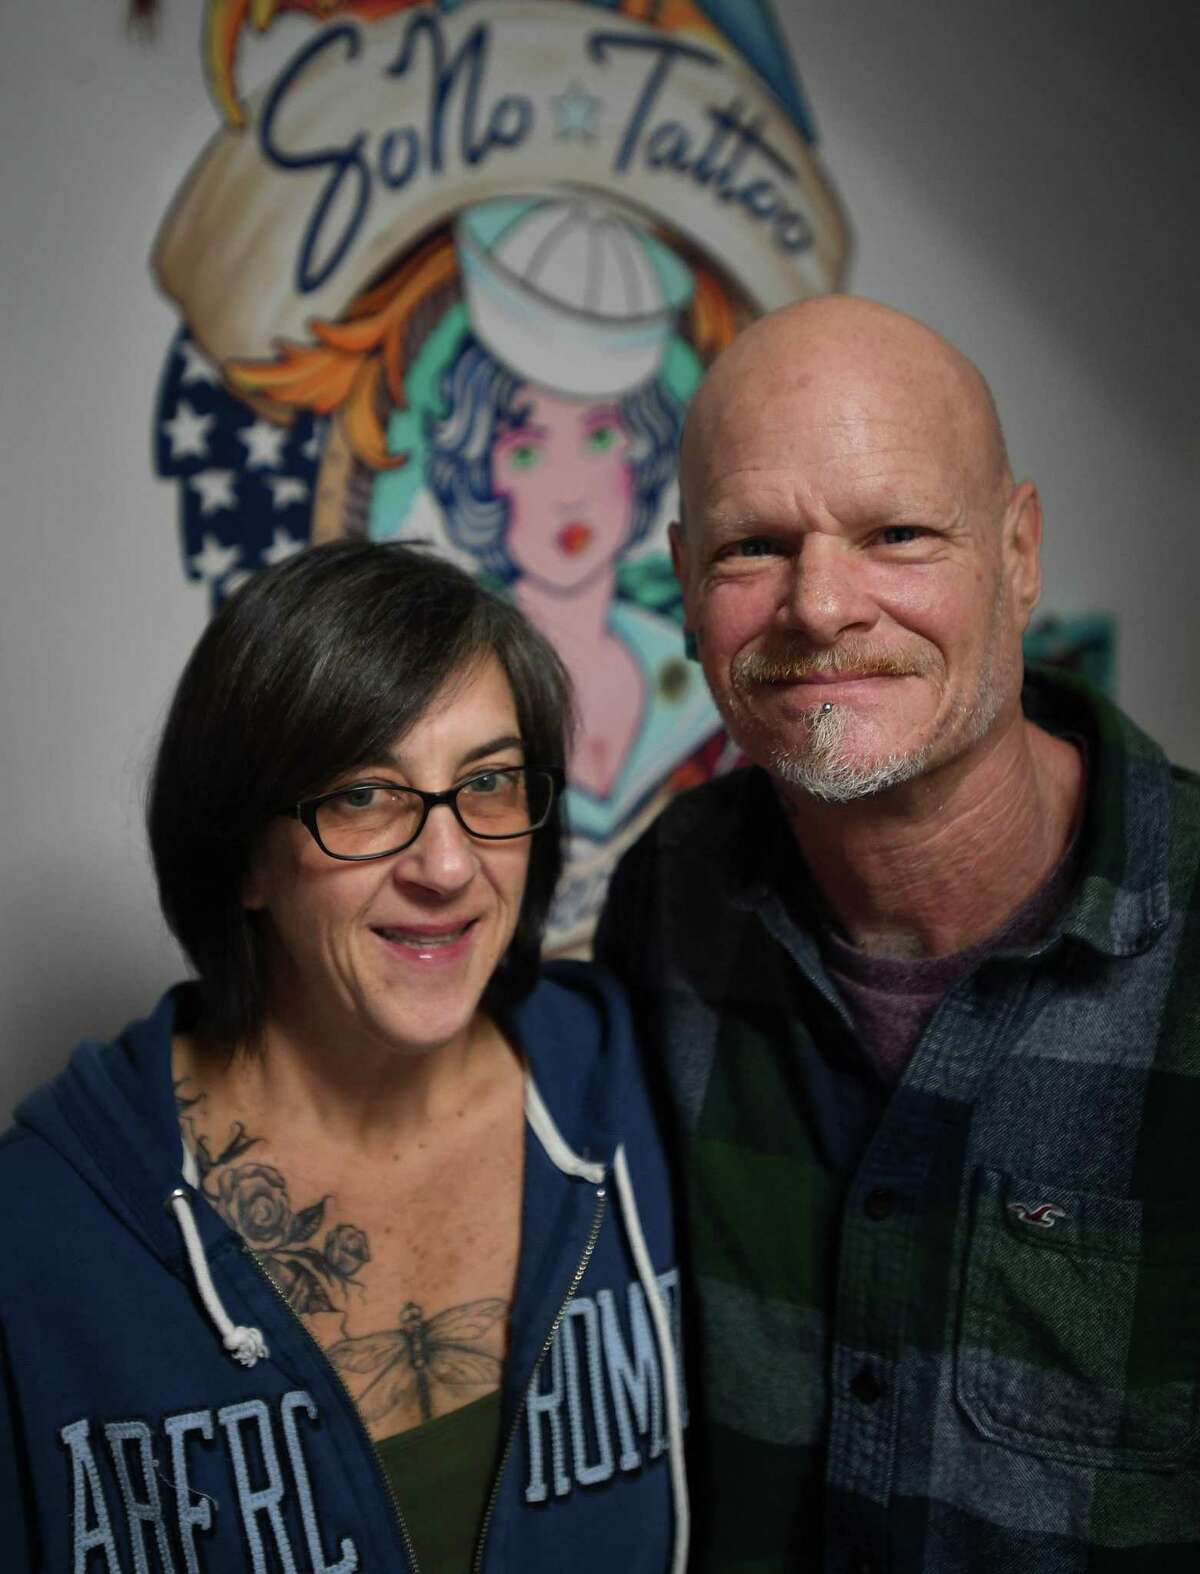 Paula Torelli and tattoo artist Brian Sells at SoNo Tattoo at 127 Washington Street in Norwalk, Conn. on Monday, January 25, 2021. The couple have operated the shop for two months. At SoNo Tattoo, Torelli handles the business side of the shop while Sells administers the tattoos. Sells is the only tattoo artist at the shop, allowing him full control over the quality of each tattoo, he said.